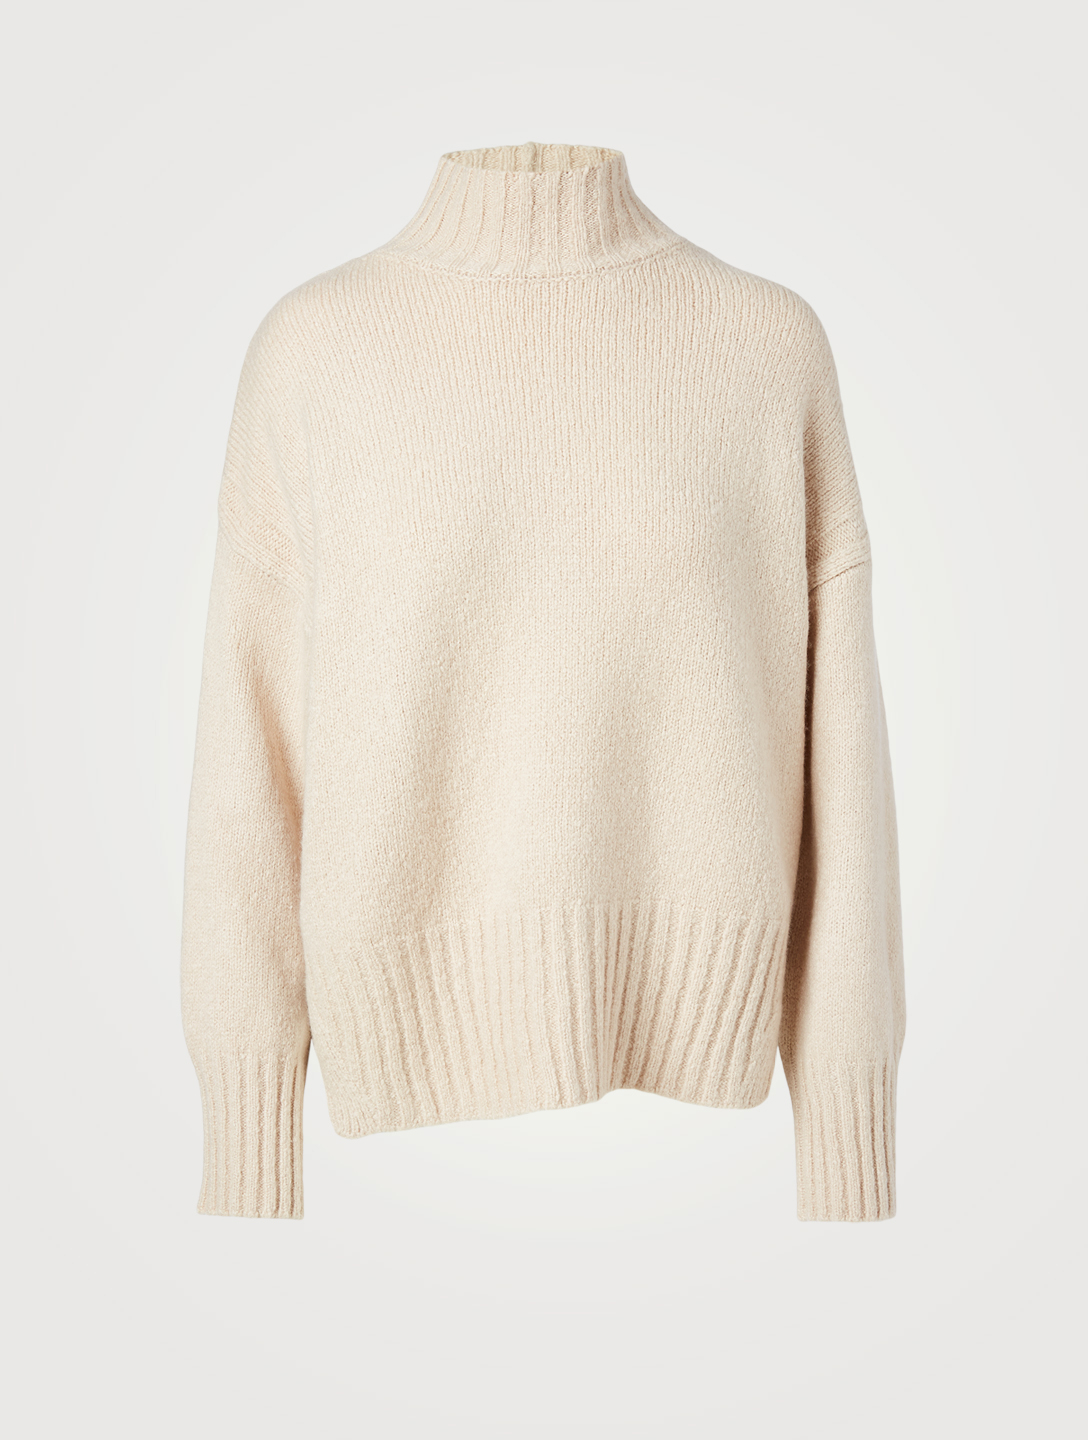 FRAME Wool And Silk Turtleneck Sweater Women's Beige